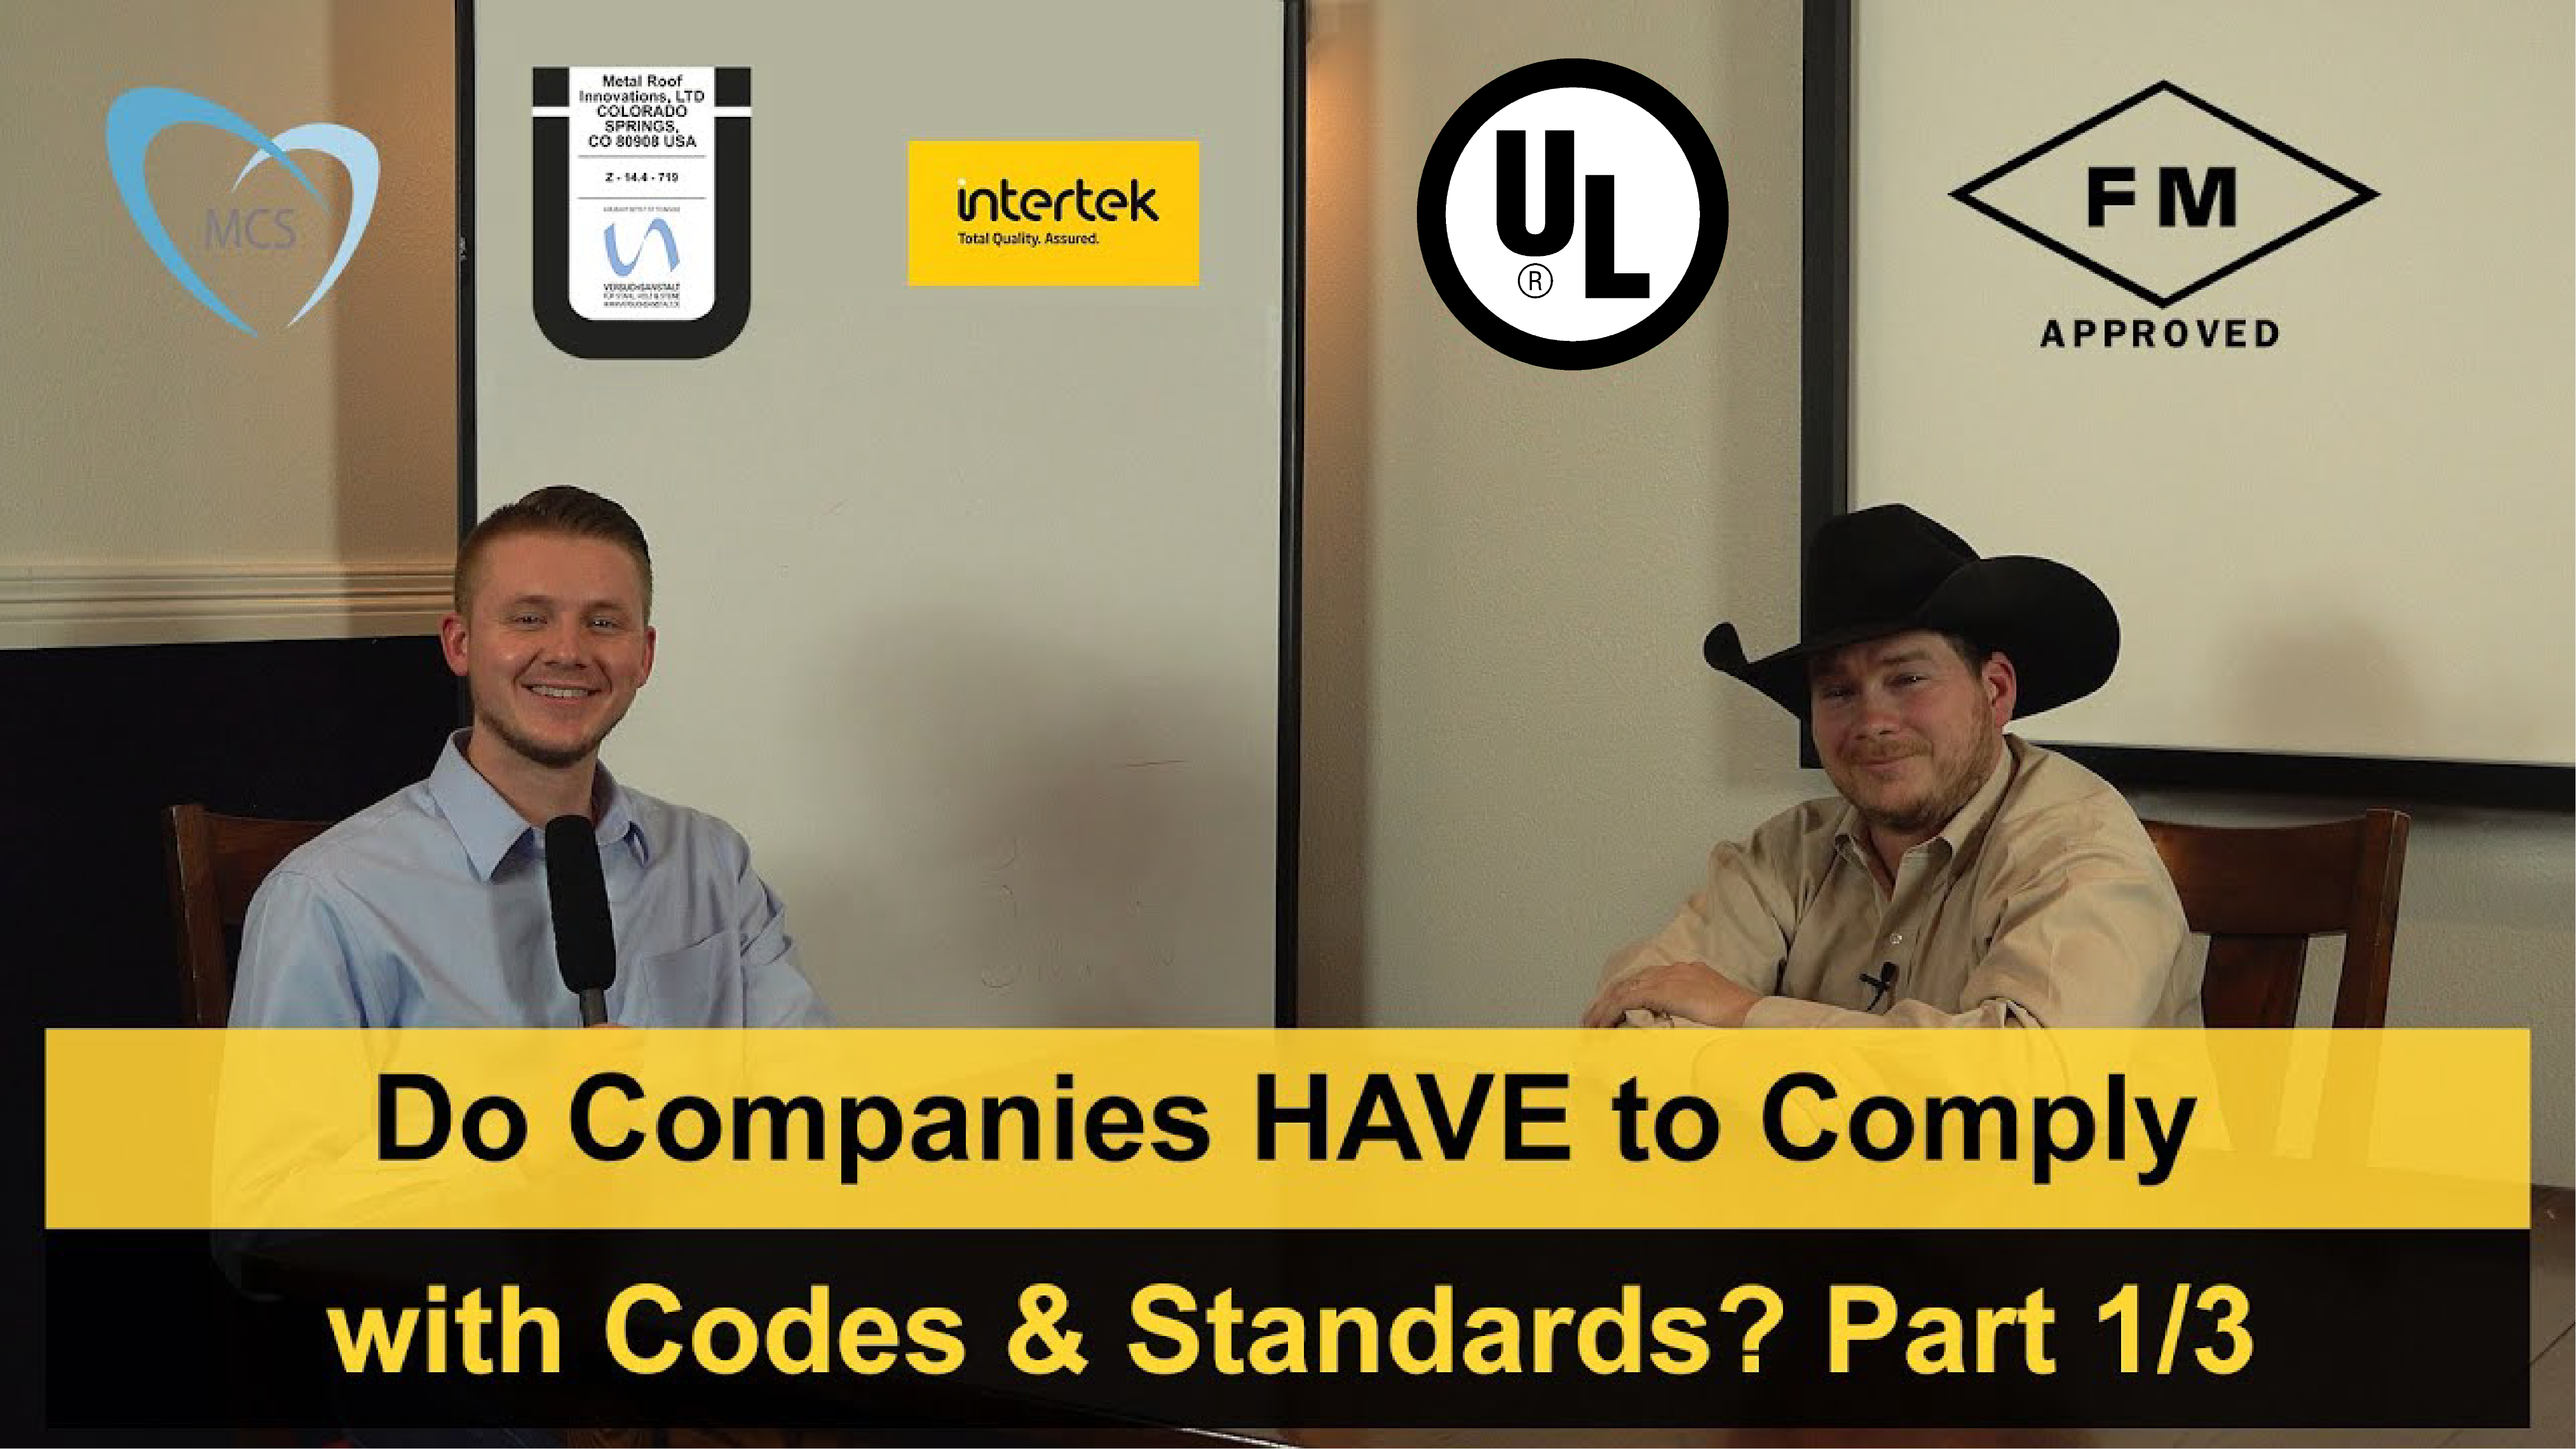 Do Companies HAVE to Comply with Codes & Standards?